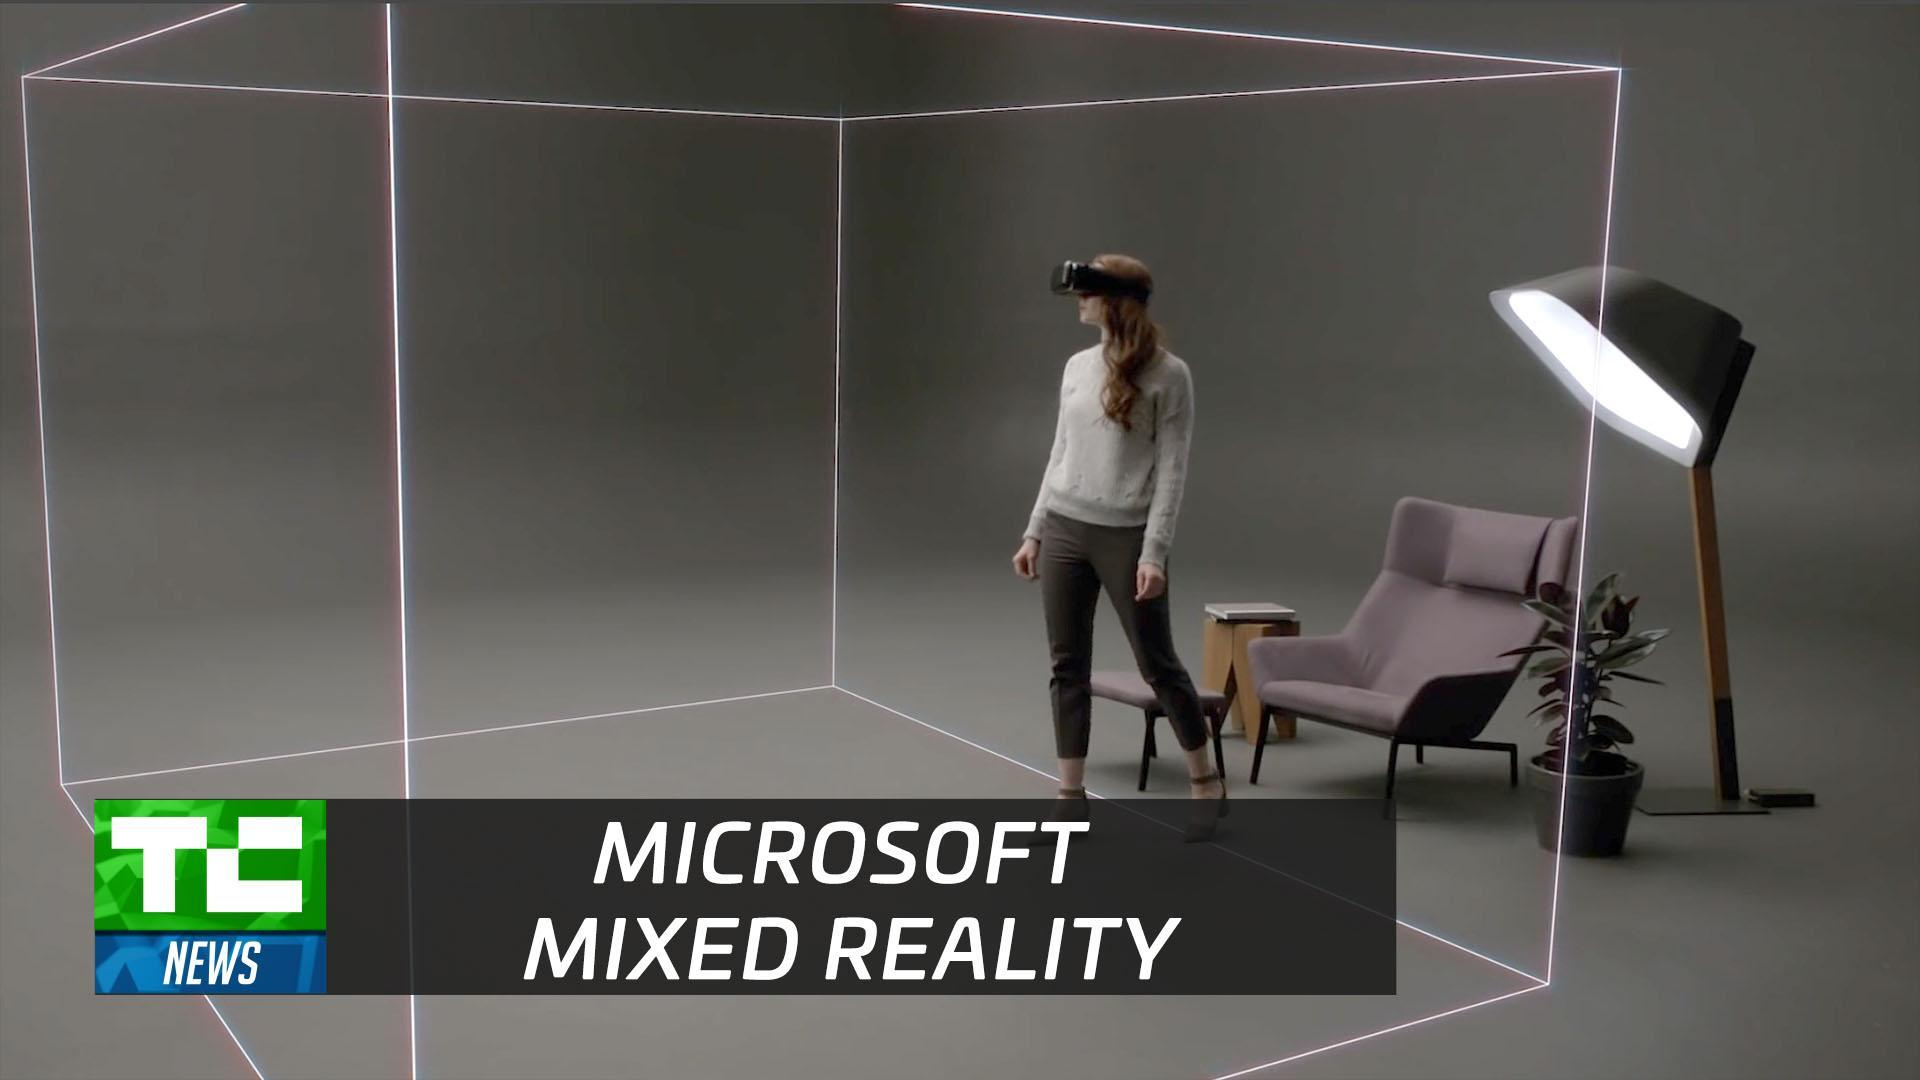 Microsoft's 'mixed reality' headsets